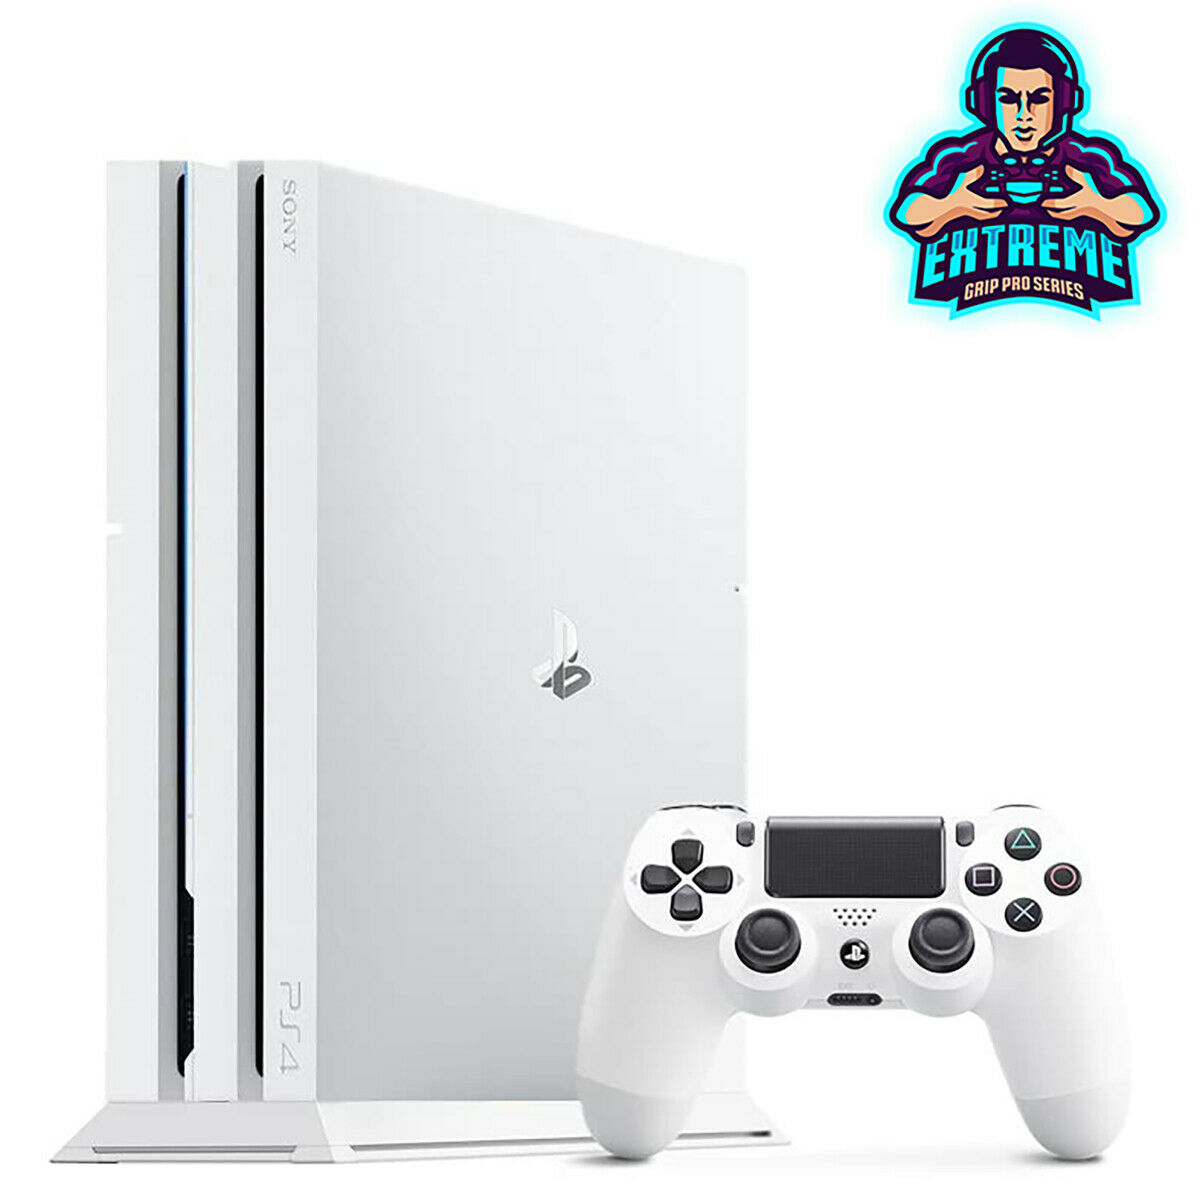 WHITE Vented Vertical Stand Dock Holder for Playstation 4 PS4 PRO Console